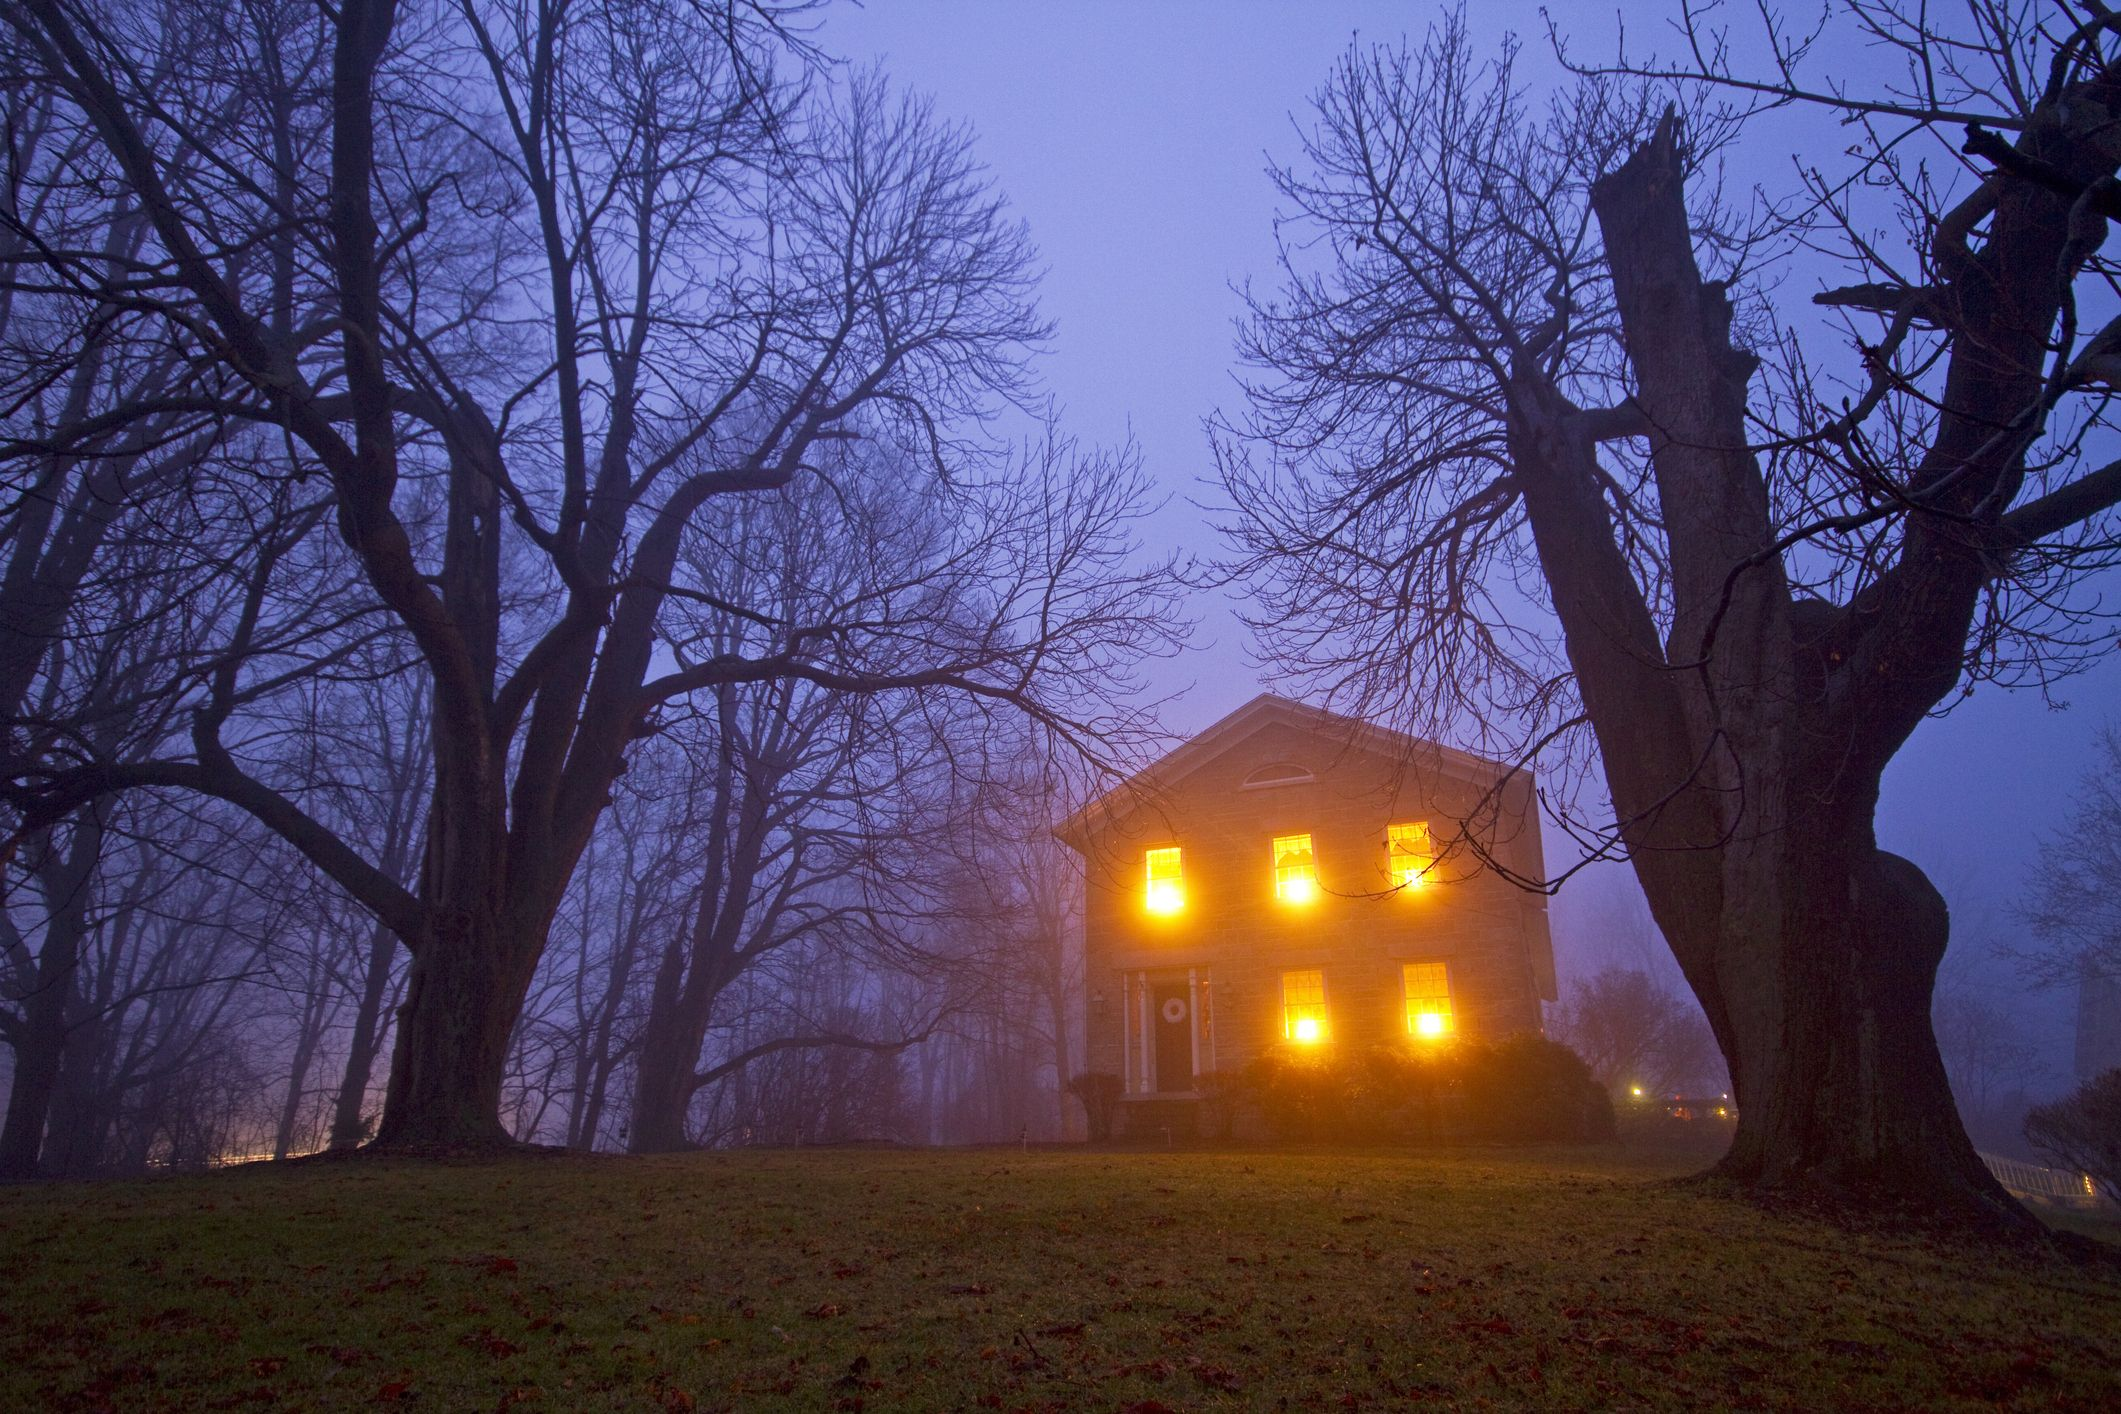 7 Haunted Objects You Do Not Want to Bring Into Your Home